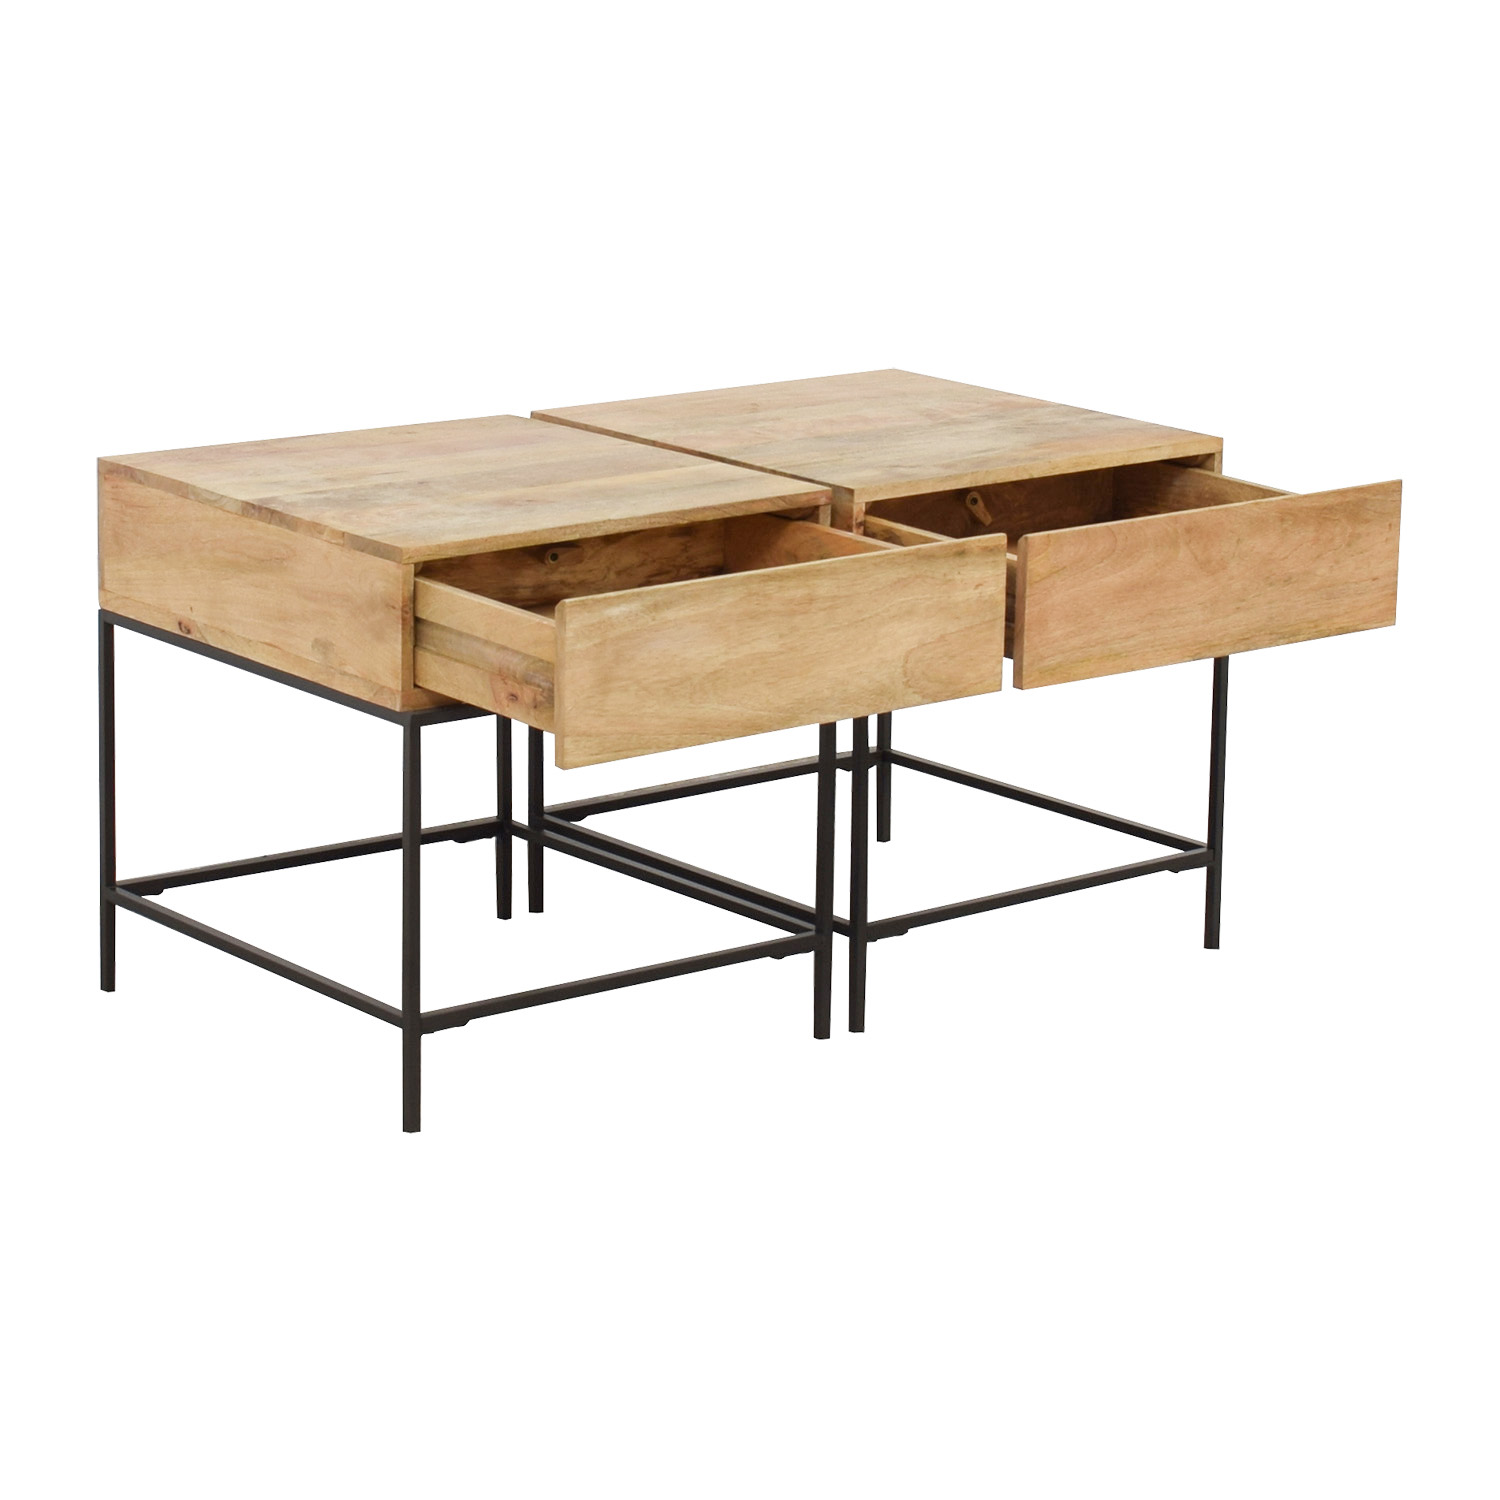 West Elm Rustic Raw Mango Wood Single-Drawer End Tables / Tables